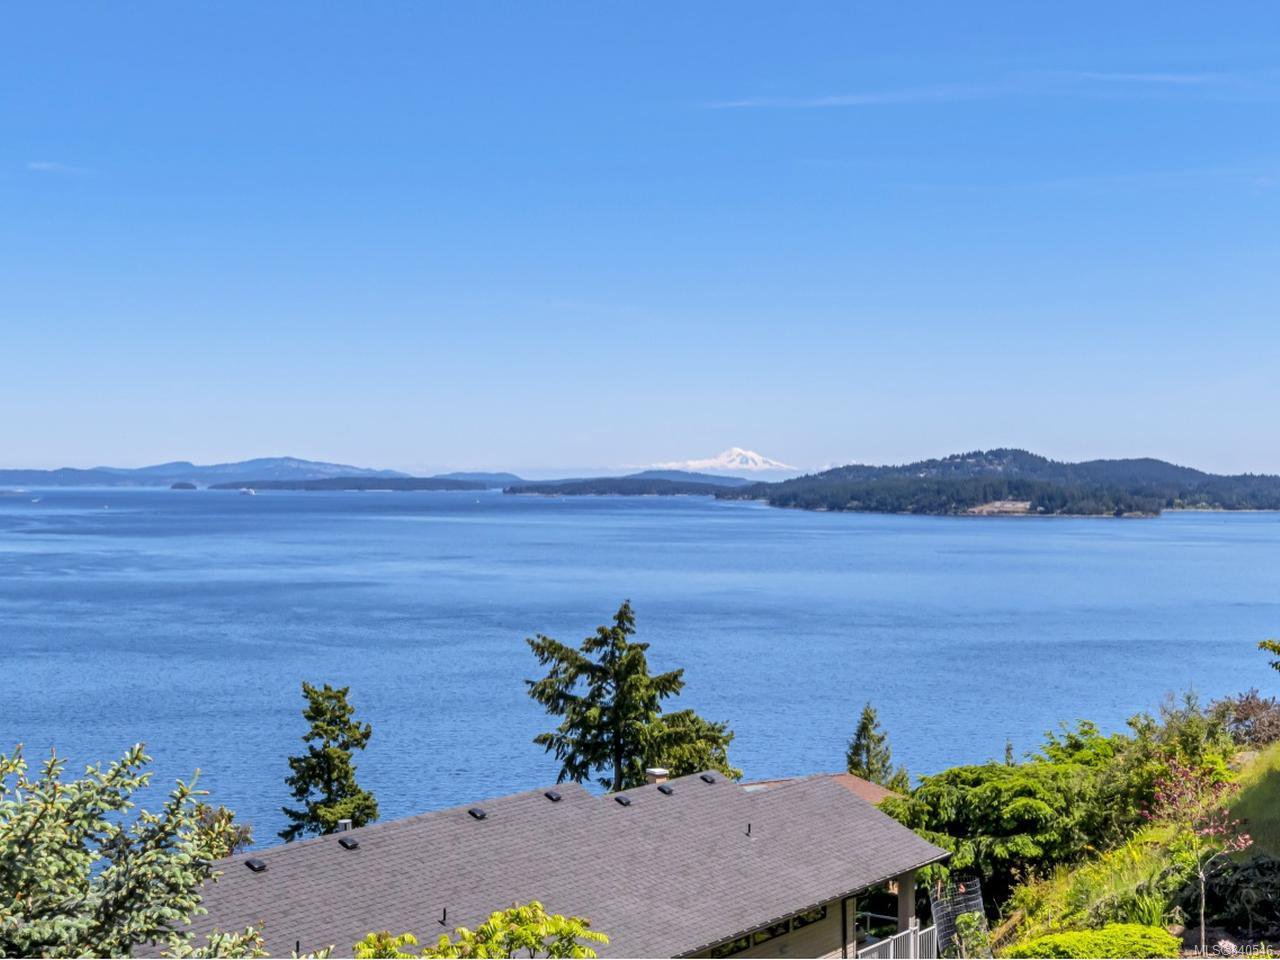 Main Photo: 475 Seaview Way in COBBLE HILL: ML Cobble Hill House for sale (Malahat & Area)  : MLS®# 840546